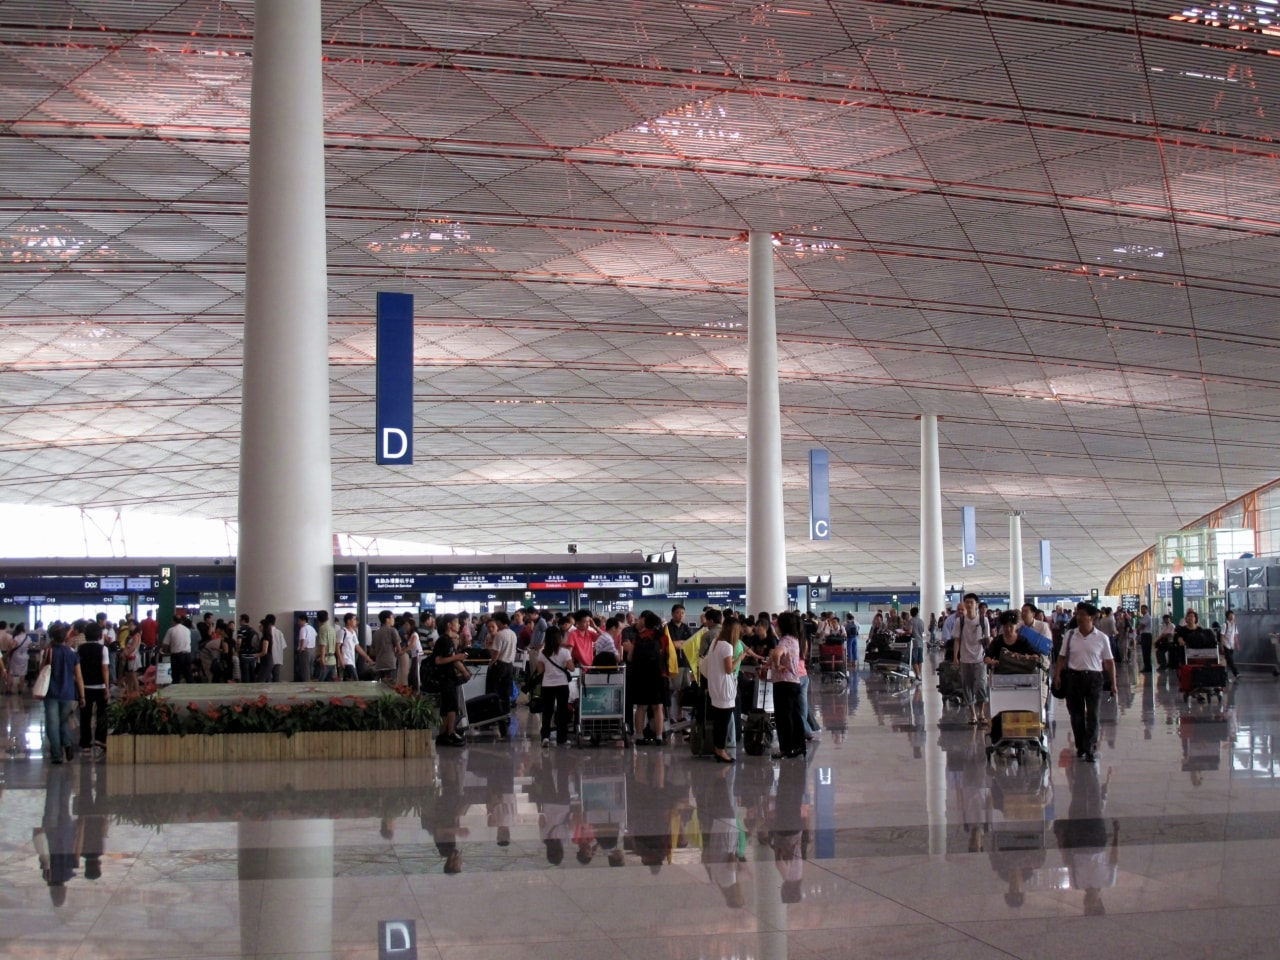 Beijing Capital International Airport surpassed the 100 million passengers mark in 2018, growing by 5.4 percent and became the second busiest airport.